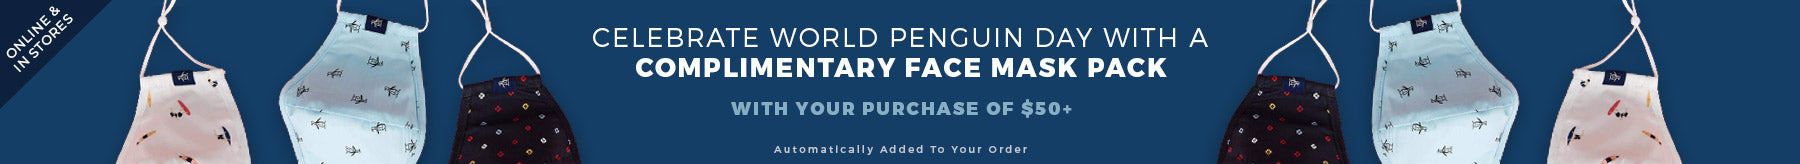 CELEBRATE WORLD PENGUIN DAY WITH A COMPLIMENTARY FACE MASK PACK WITH YOUR PURCHASE OF $50+